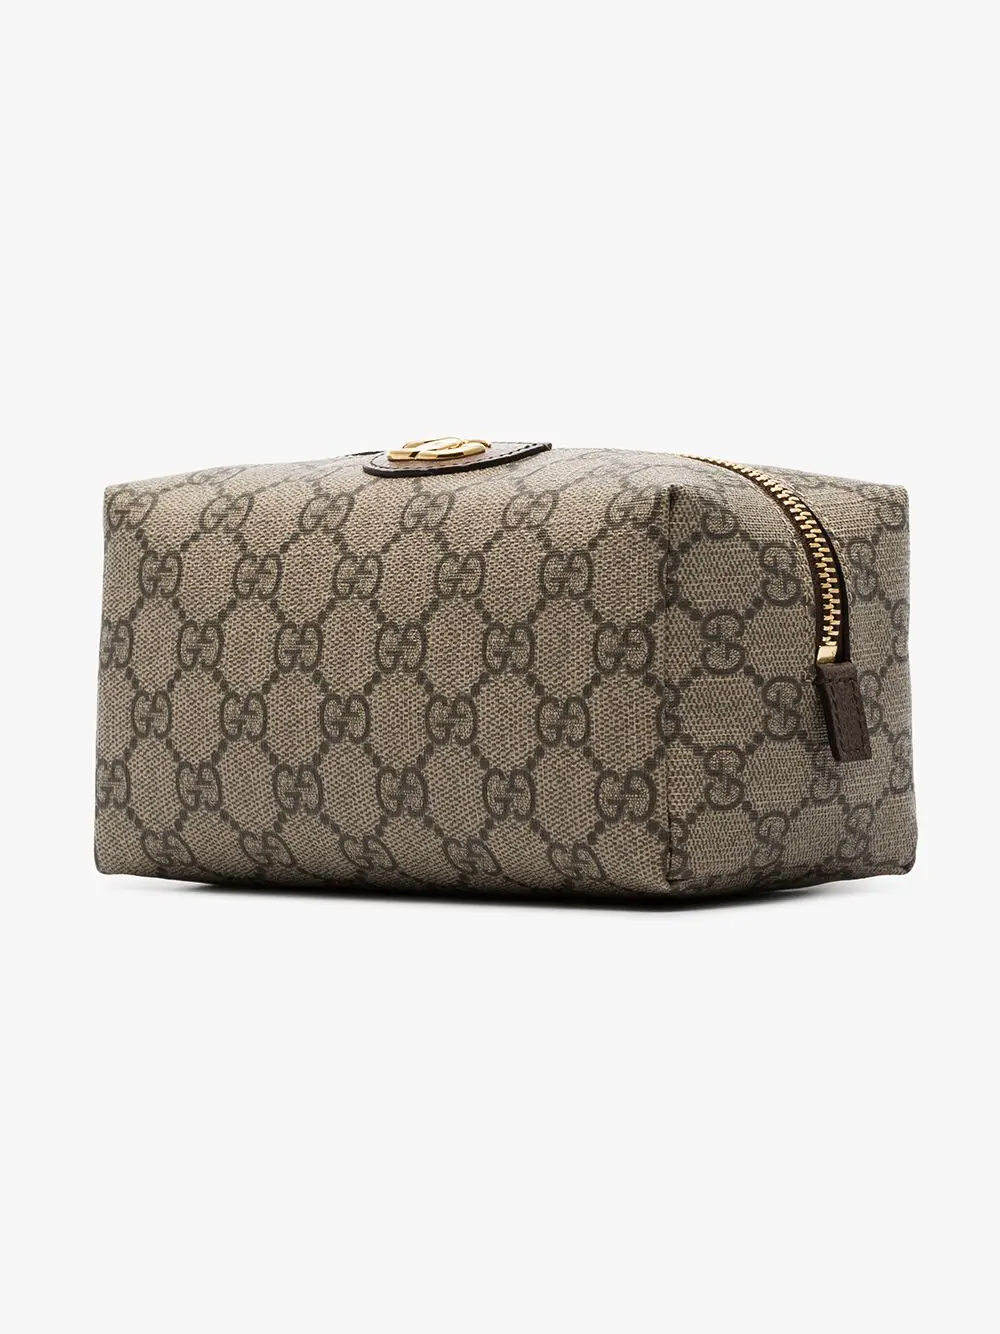 76f12919dbc Gucci Ophidia Medium Textured Leather-Trimmed Printed Coated-Canvas  Cosmetics Case In 8358 Gg